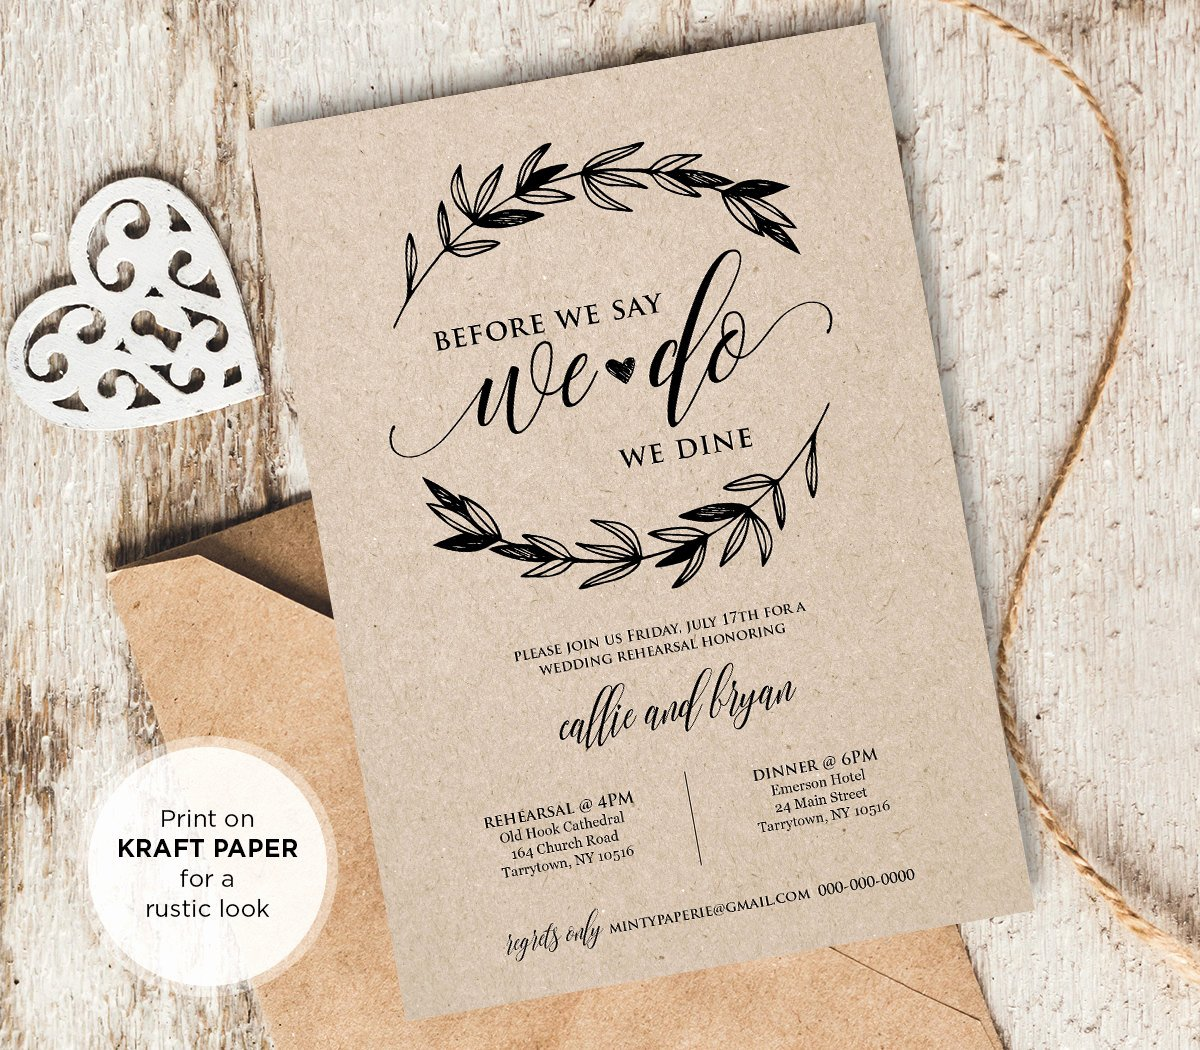 Wedding Rehearsal Dinner Invitations Template Fresh Rustic Wedding Rehearsal Invitation Instant Download